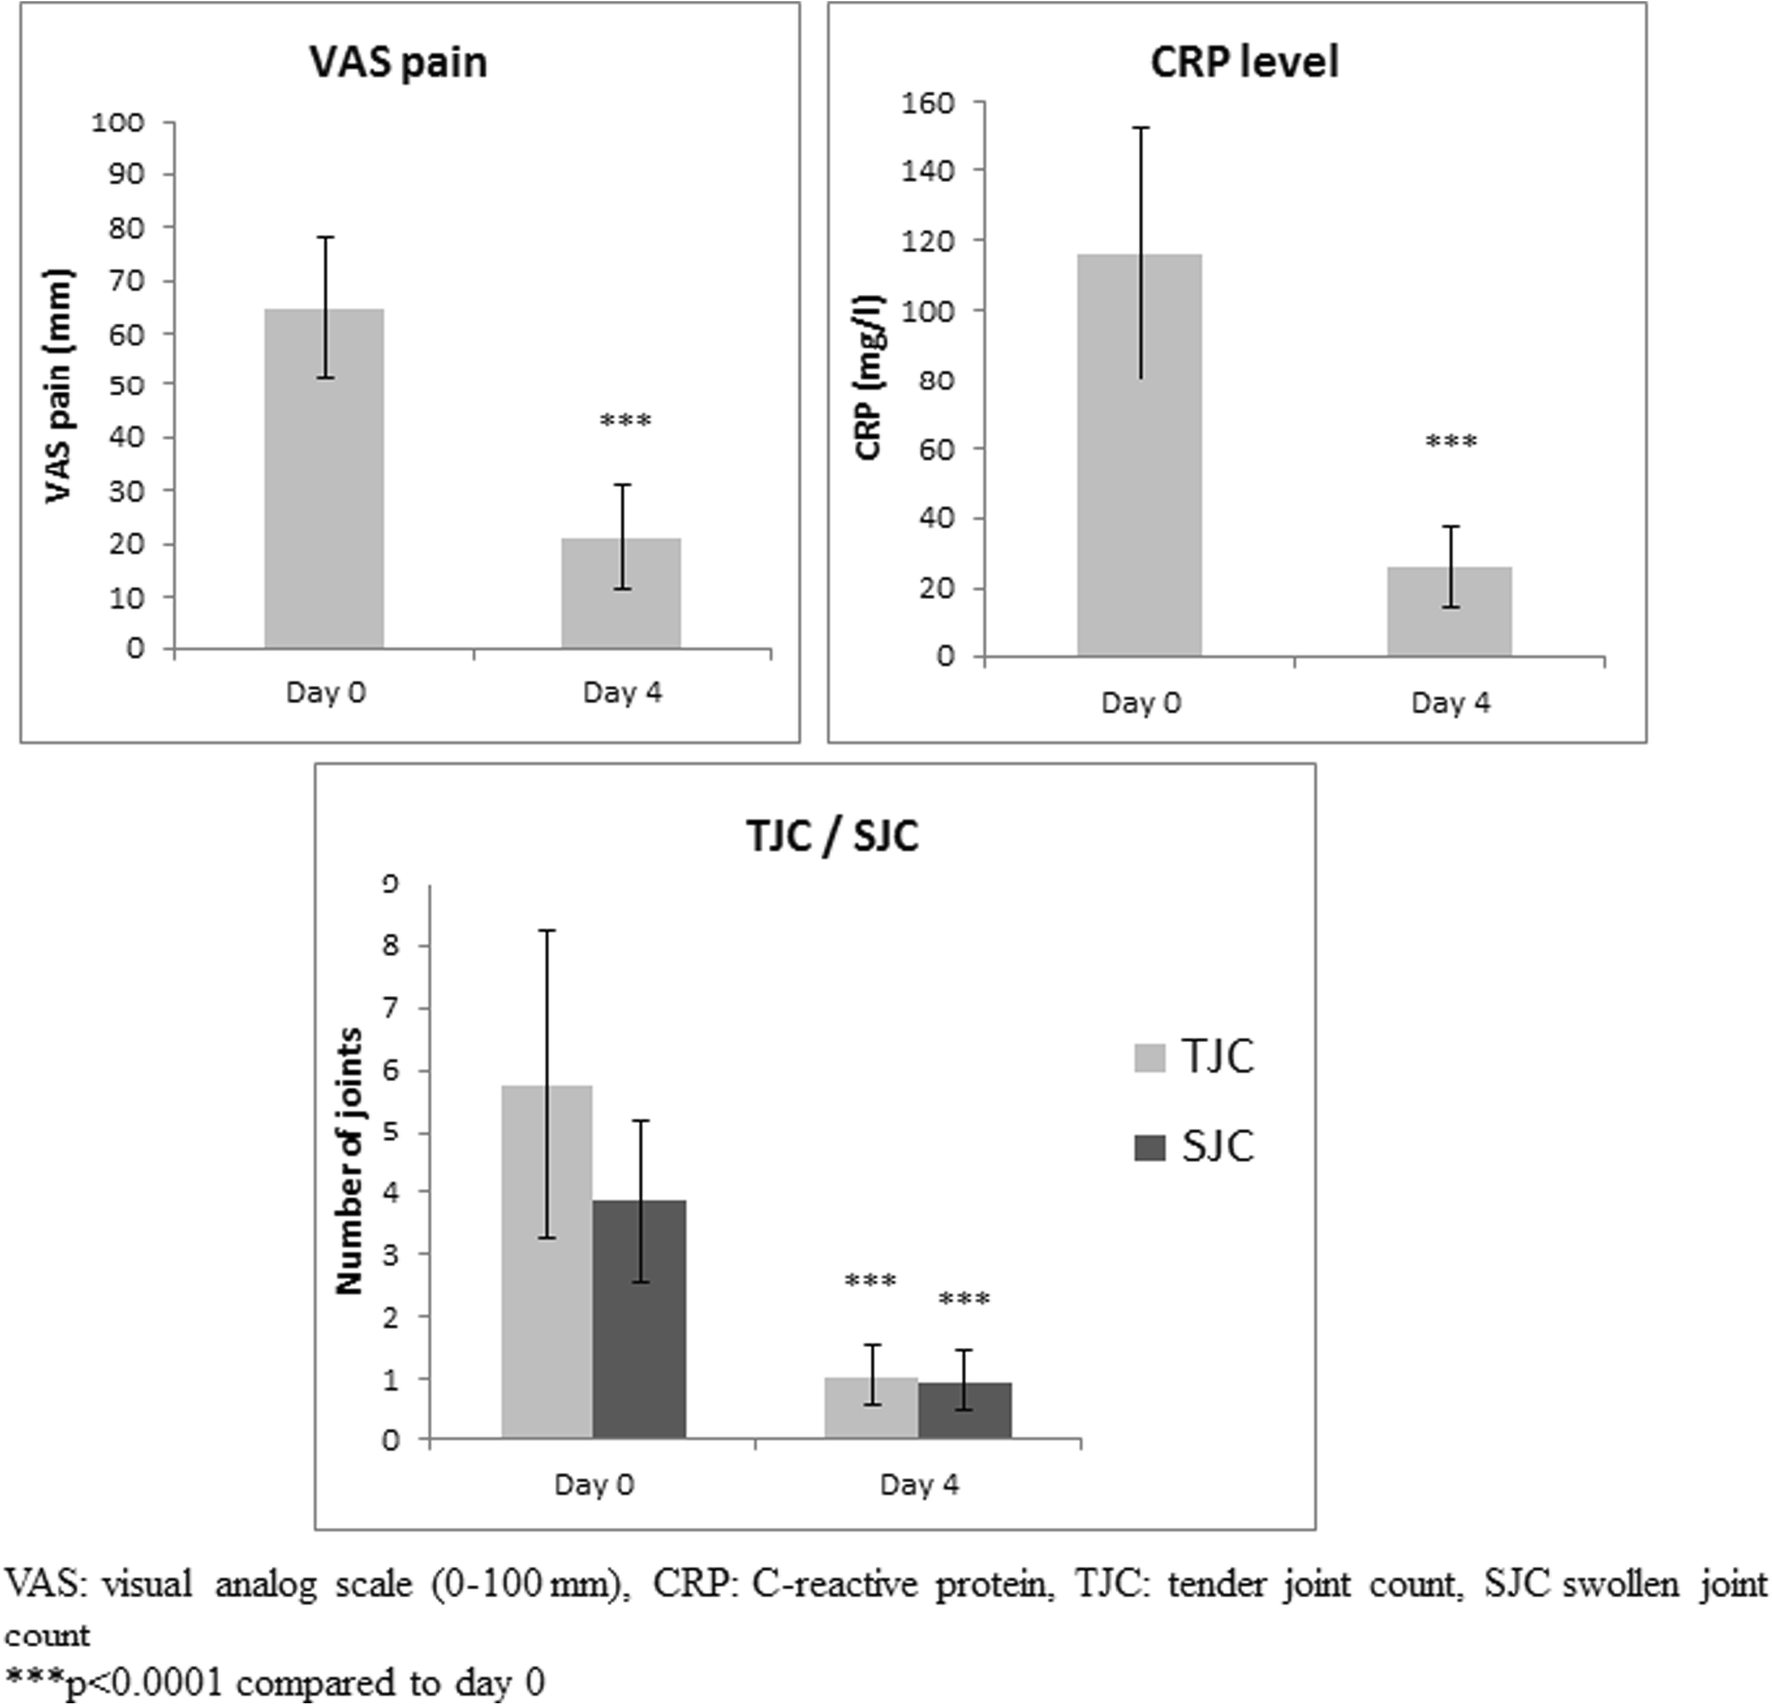 Efficacy and tolerance of anakinra in acute calcium